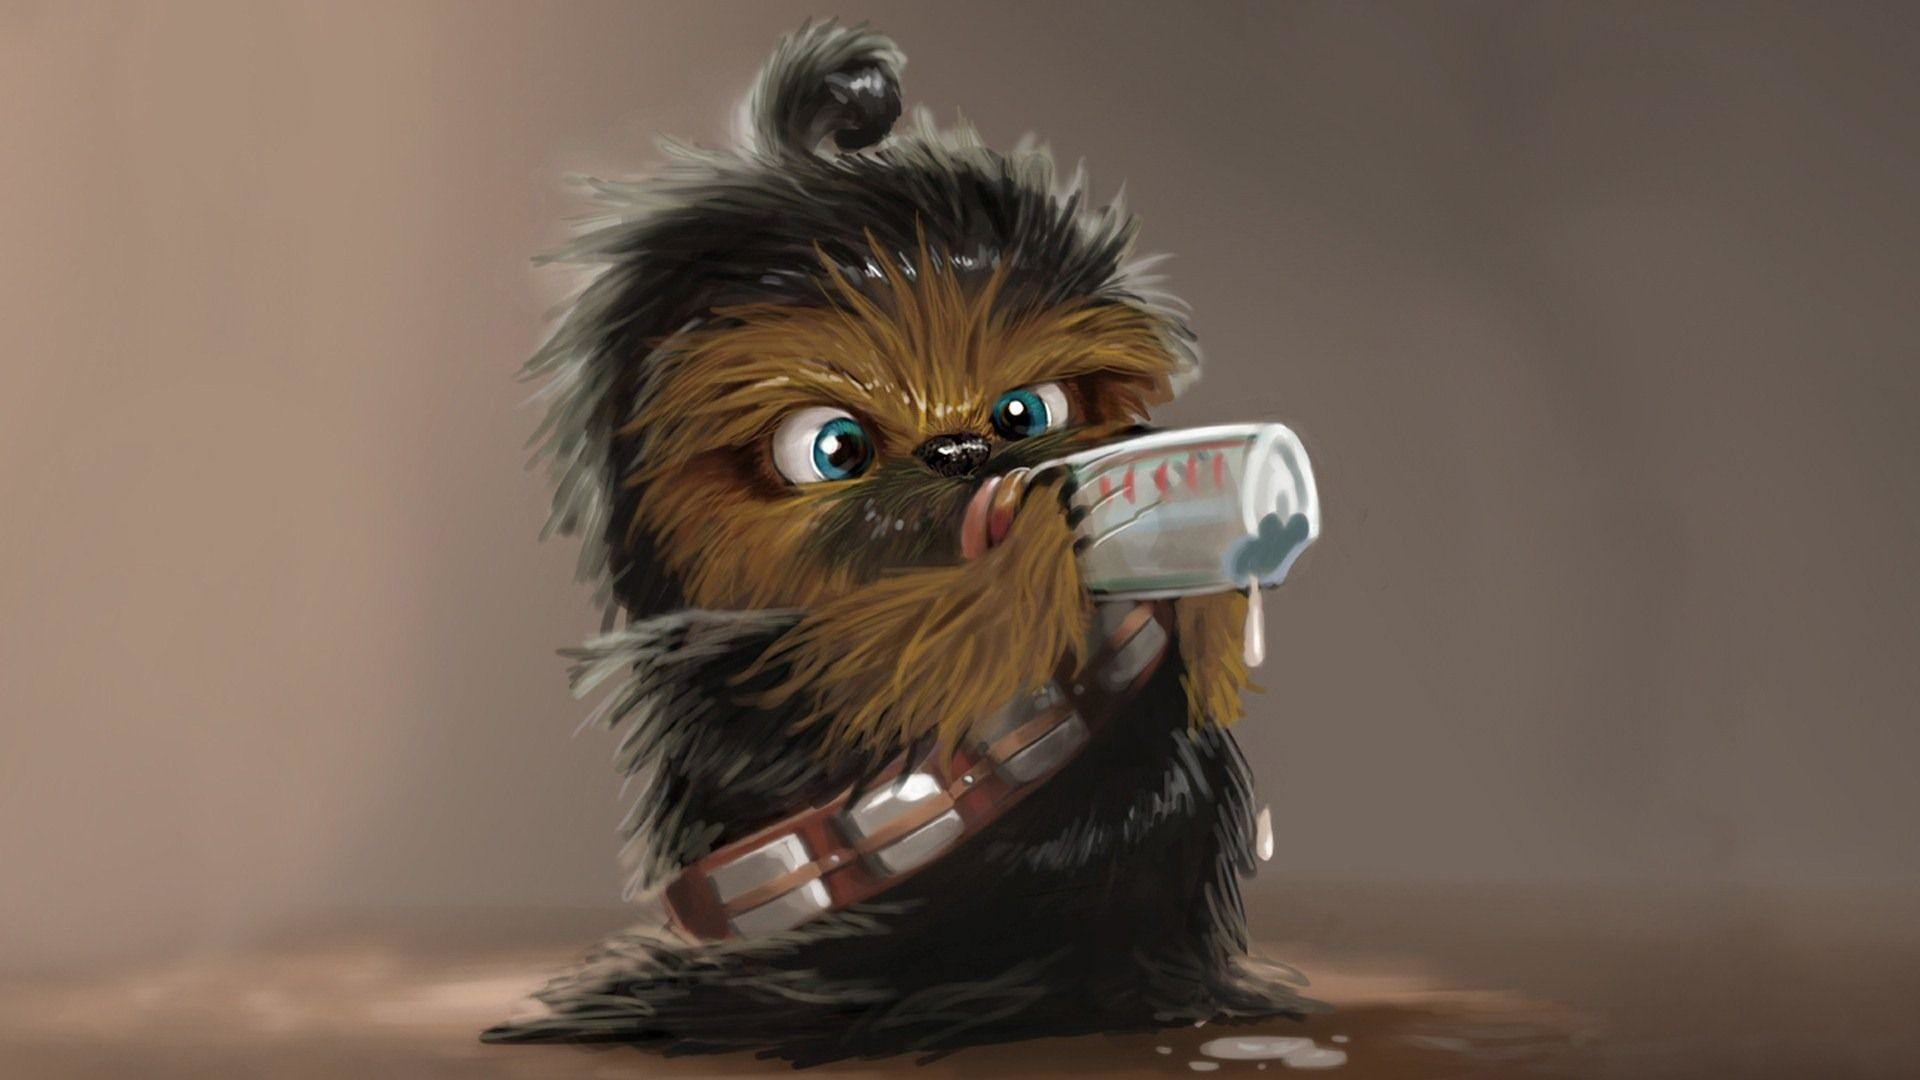 1920x1080 Fonds d'écran Chewbacca : tous les wallpapers Chewbacca